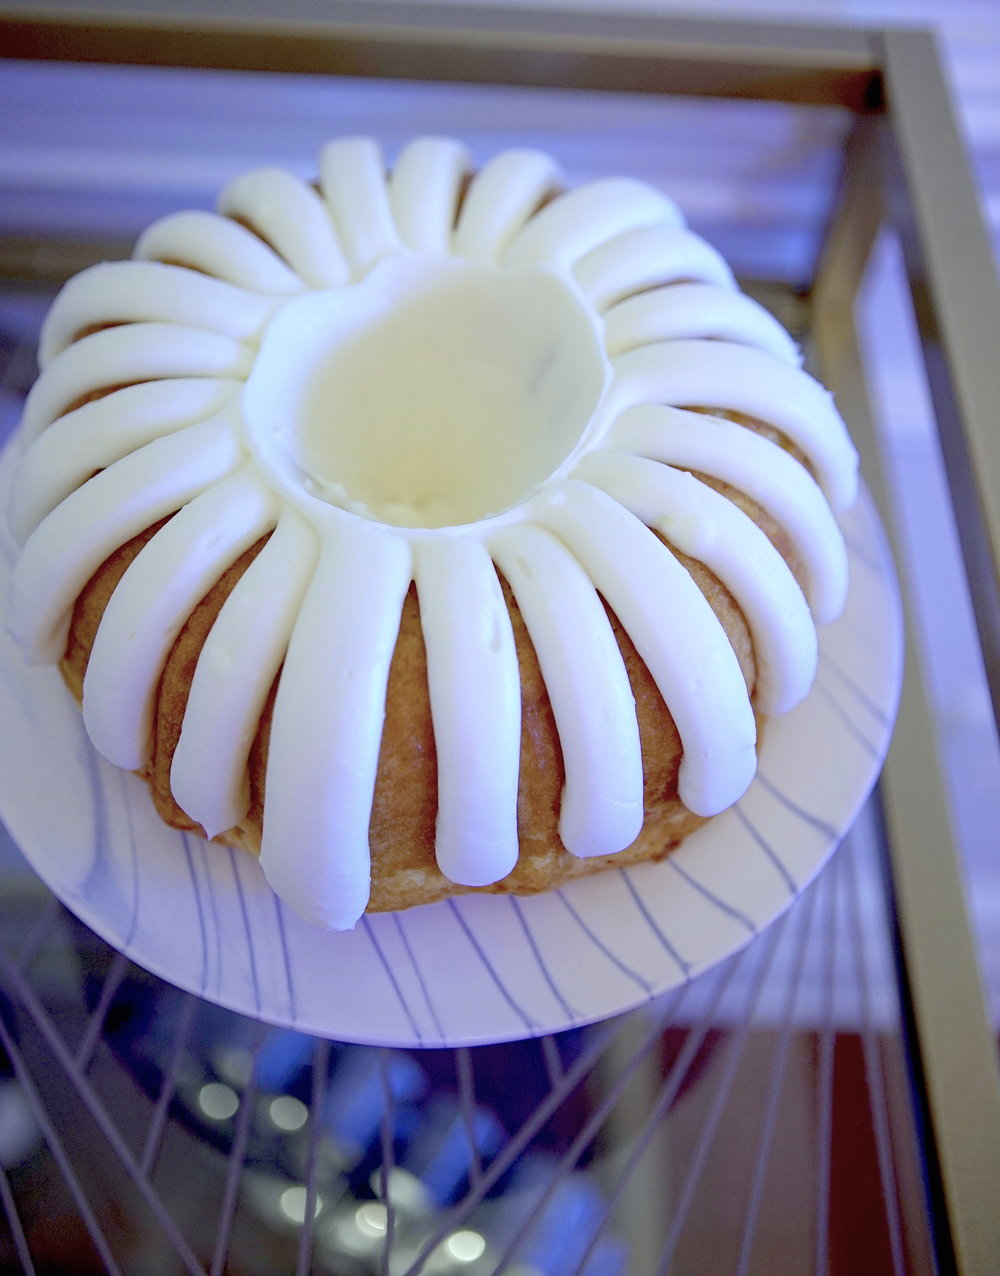 White chocolate raspberry cake from Nothing Bundt Cakes...all of their cakes are d-e-l-i-c-i-o-u-s.